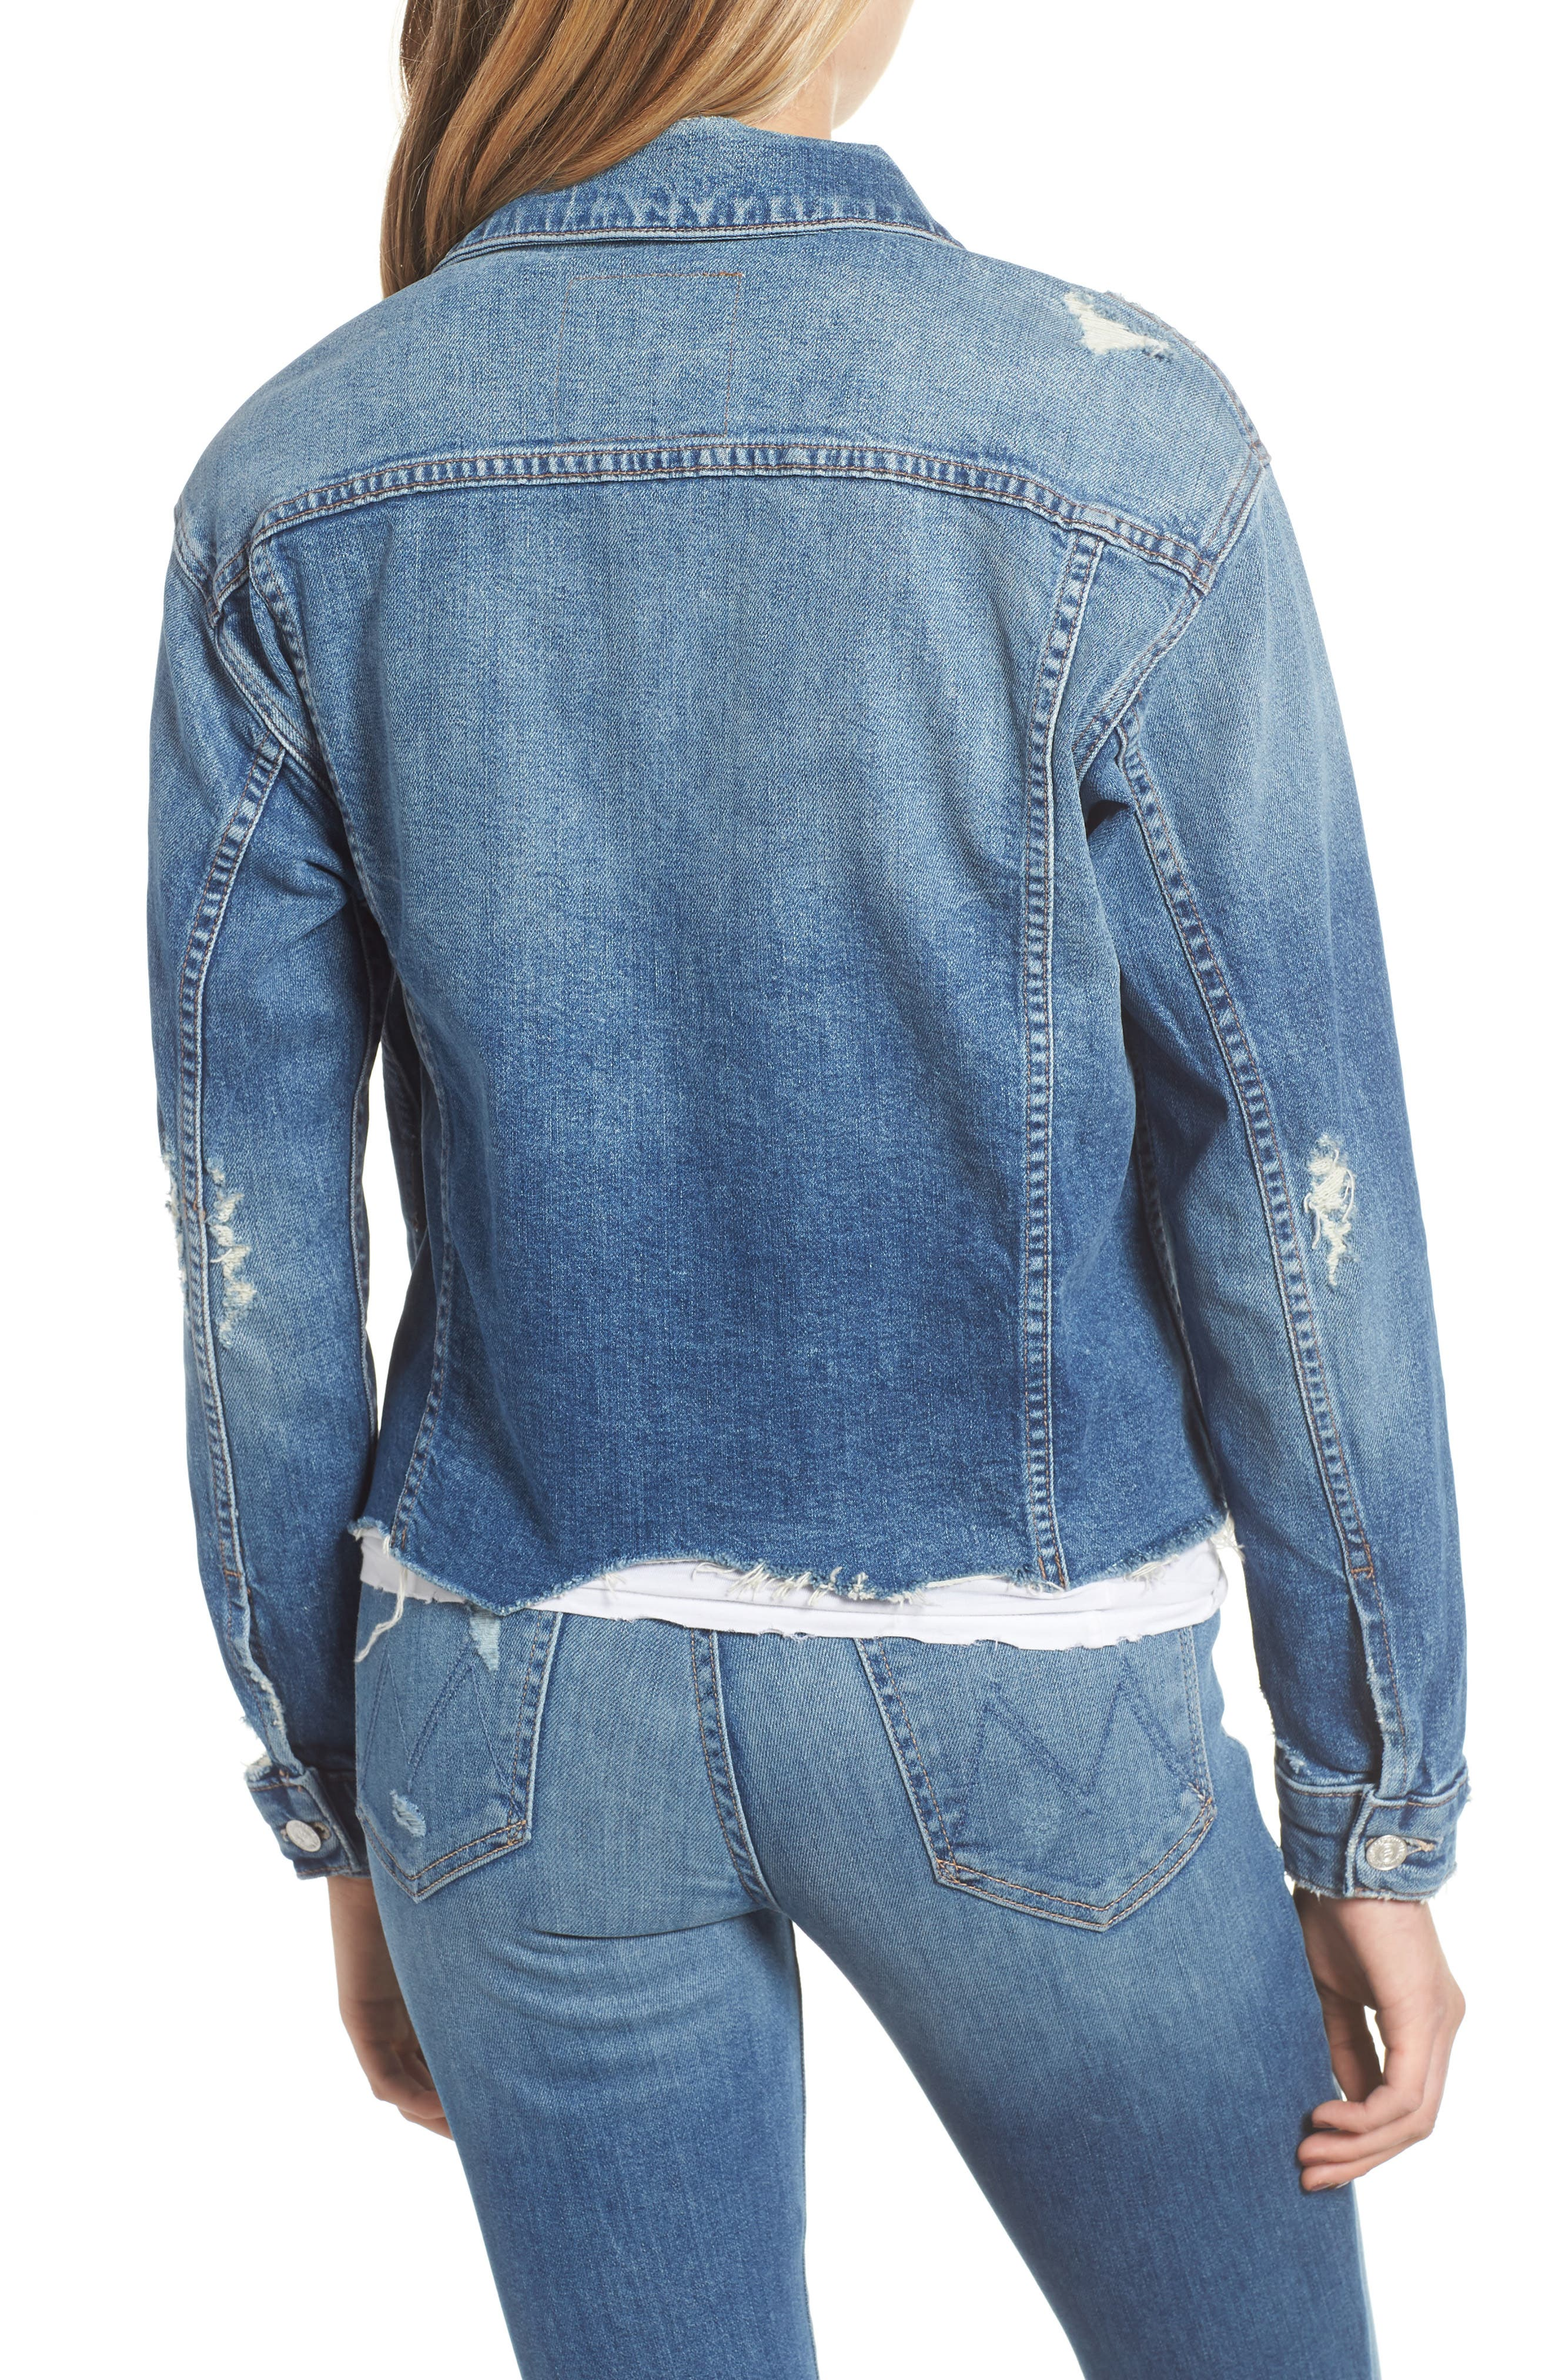 The Cut Denim Jacket,                             Alternate thumbnail 2, color,                             BETTER WHEN ITS WRONG